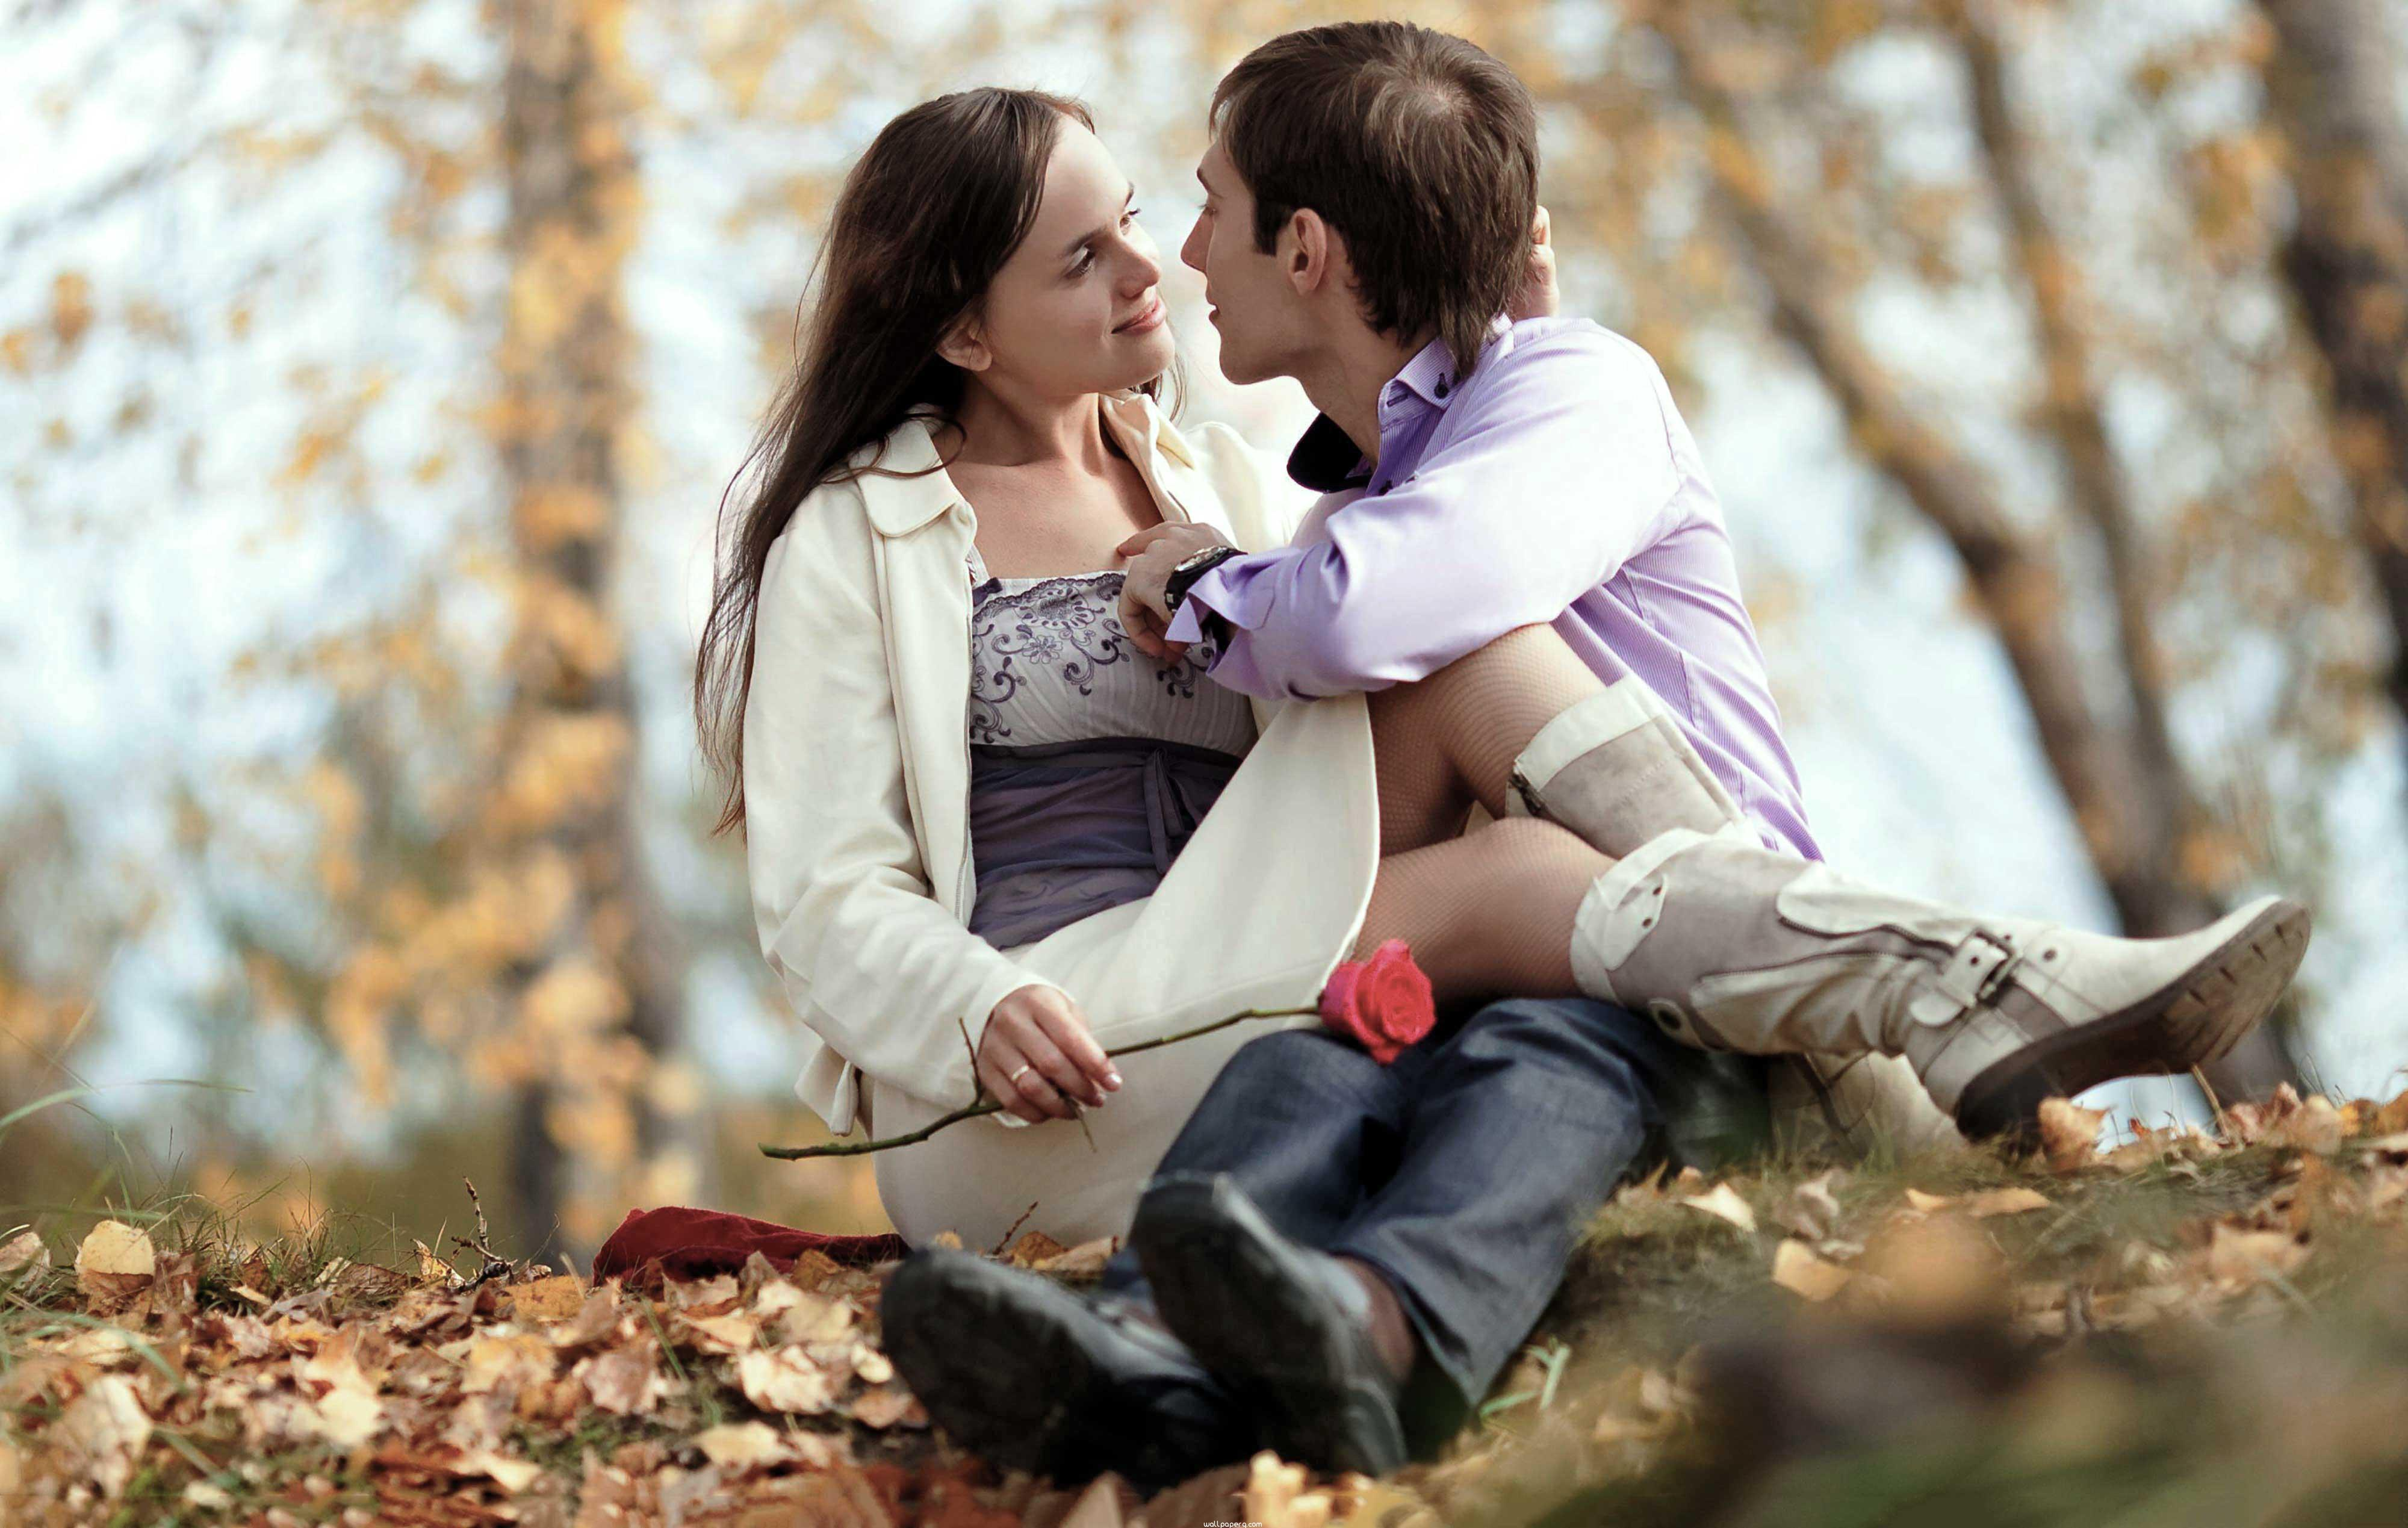 download couple in love hd wallpaper - love and emotion for your